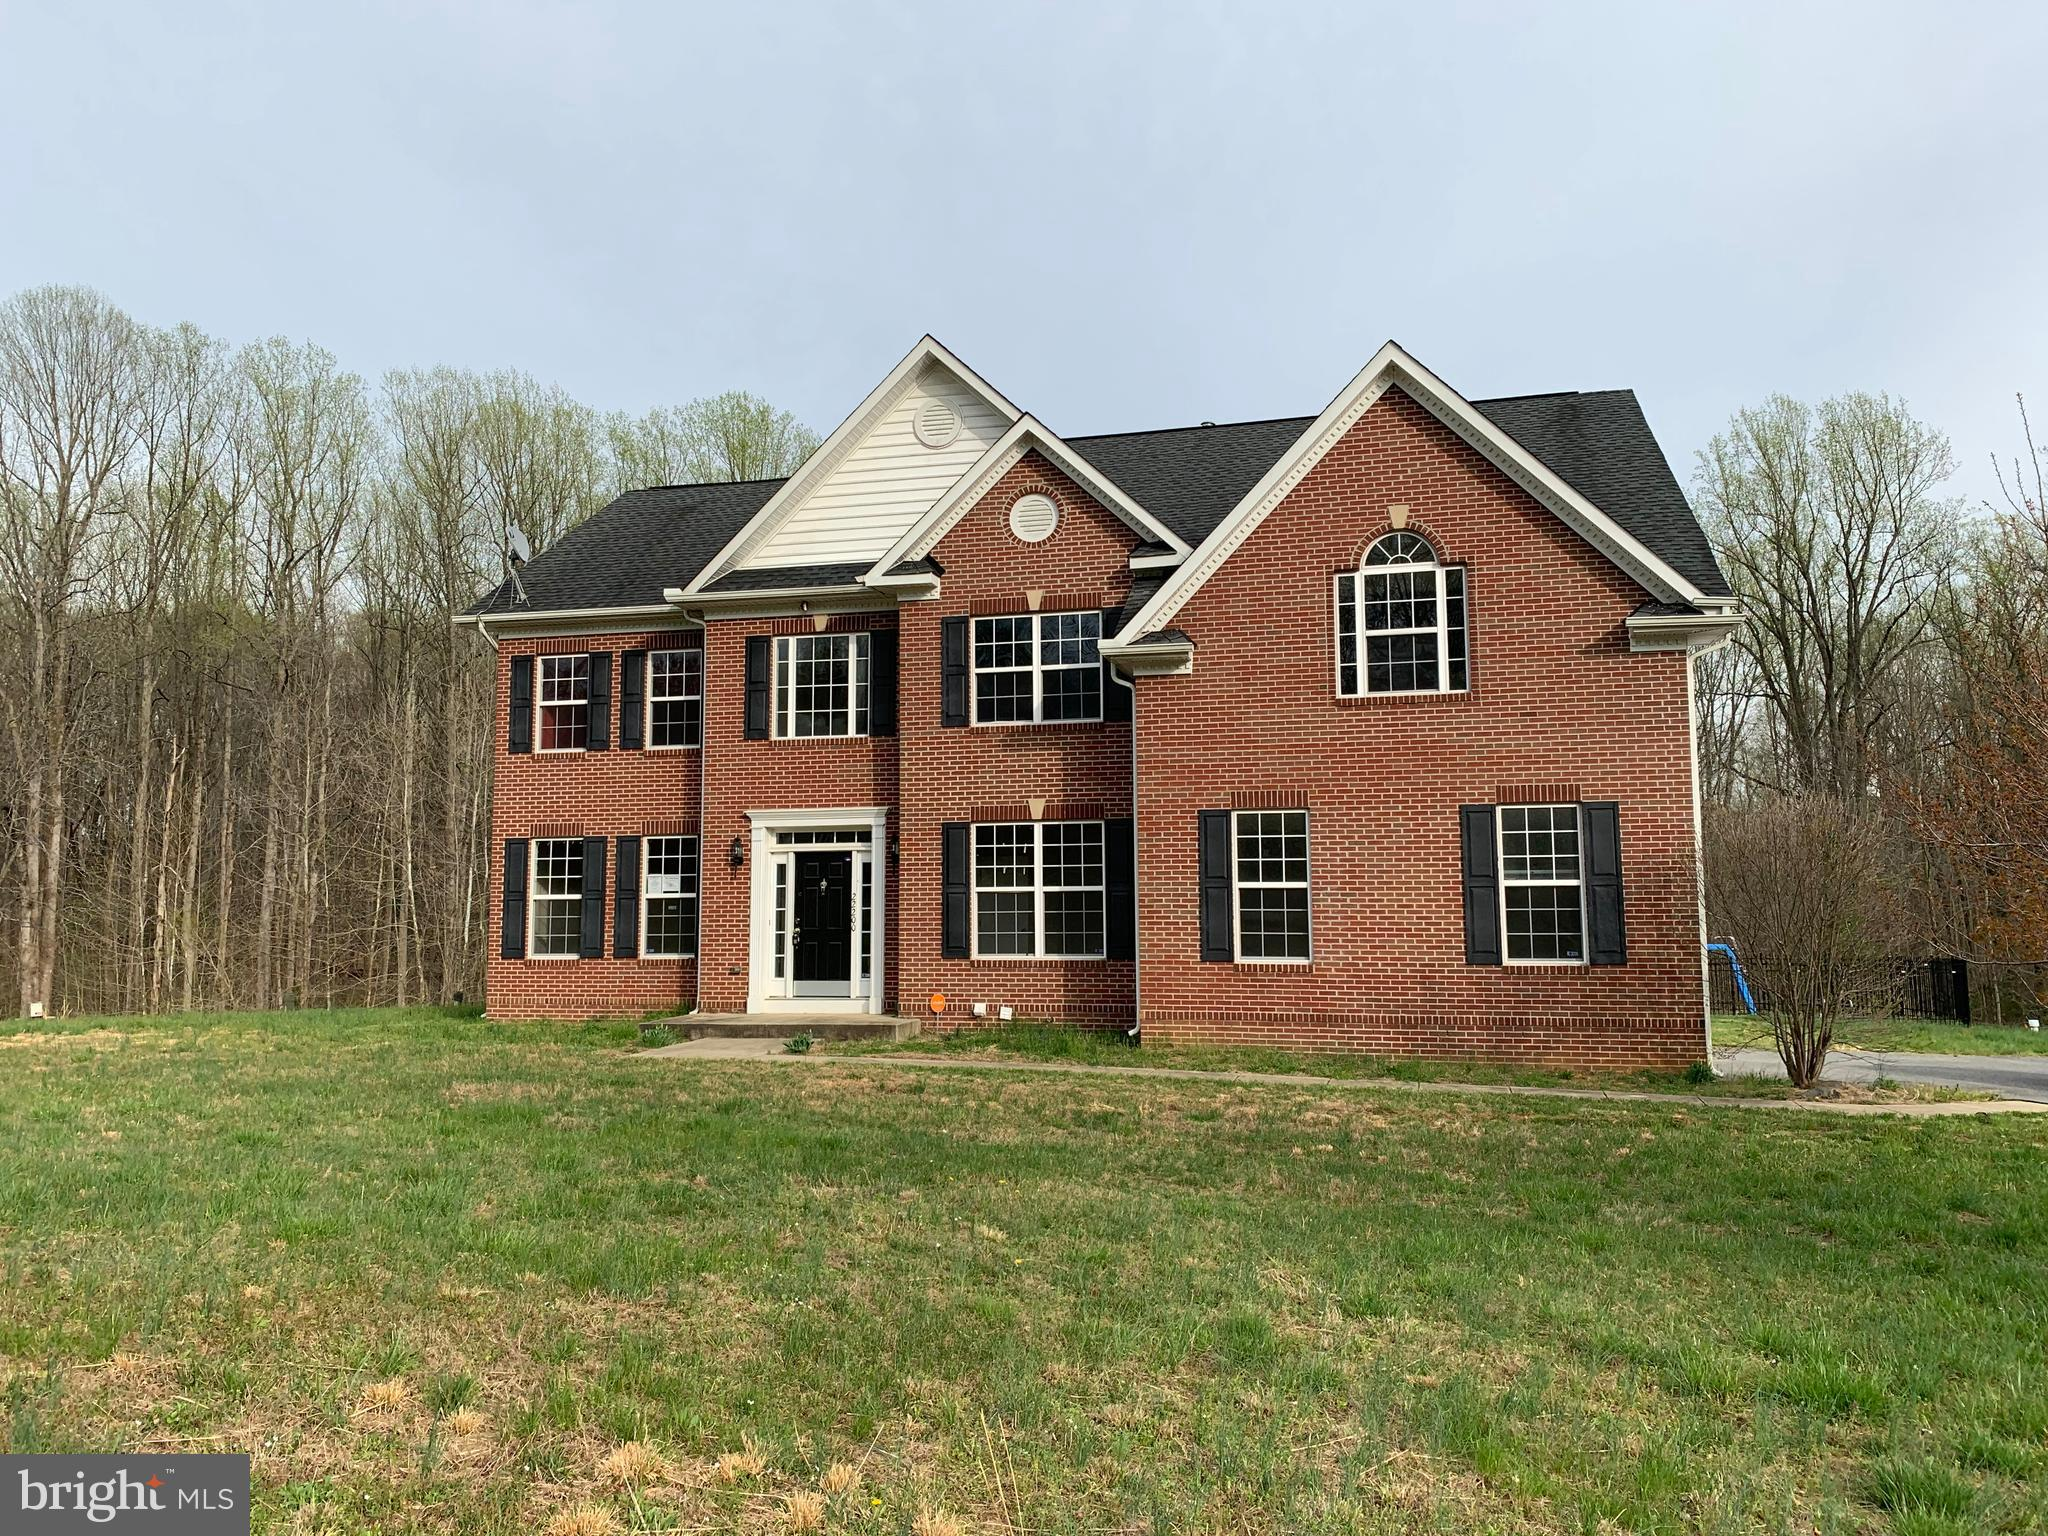 22200 GARRETTS CHANCE COURT, AQUASCO, MD 20608